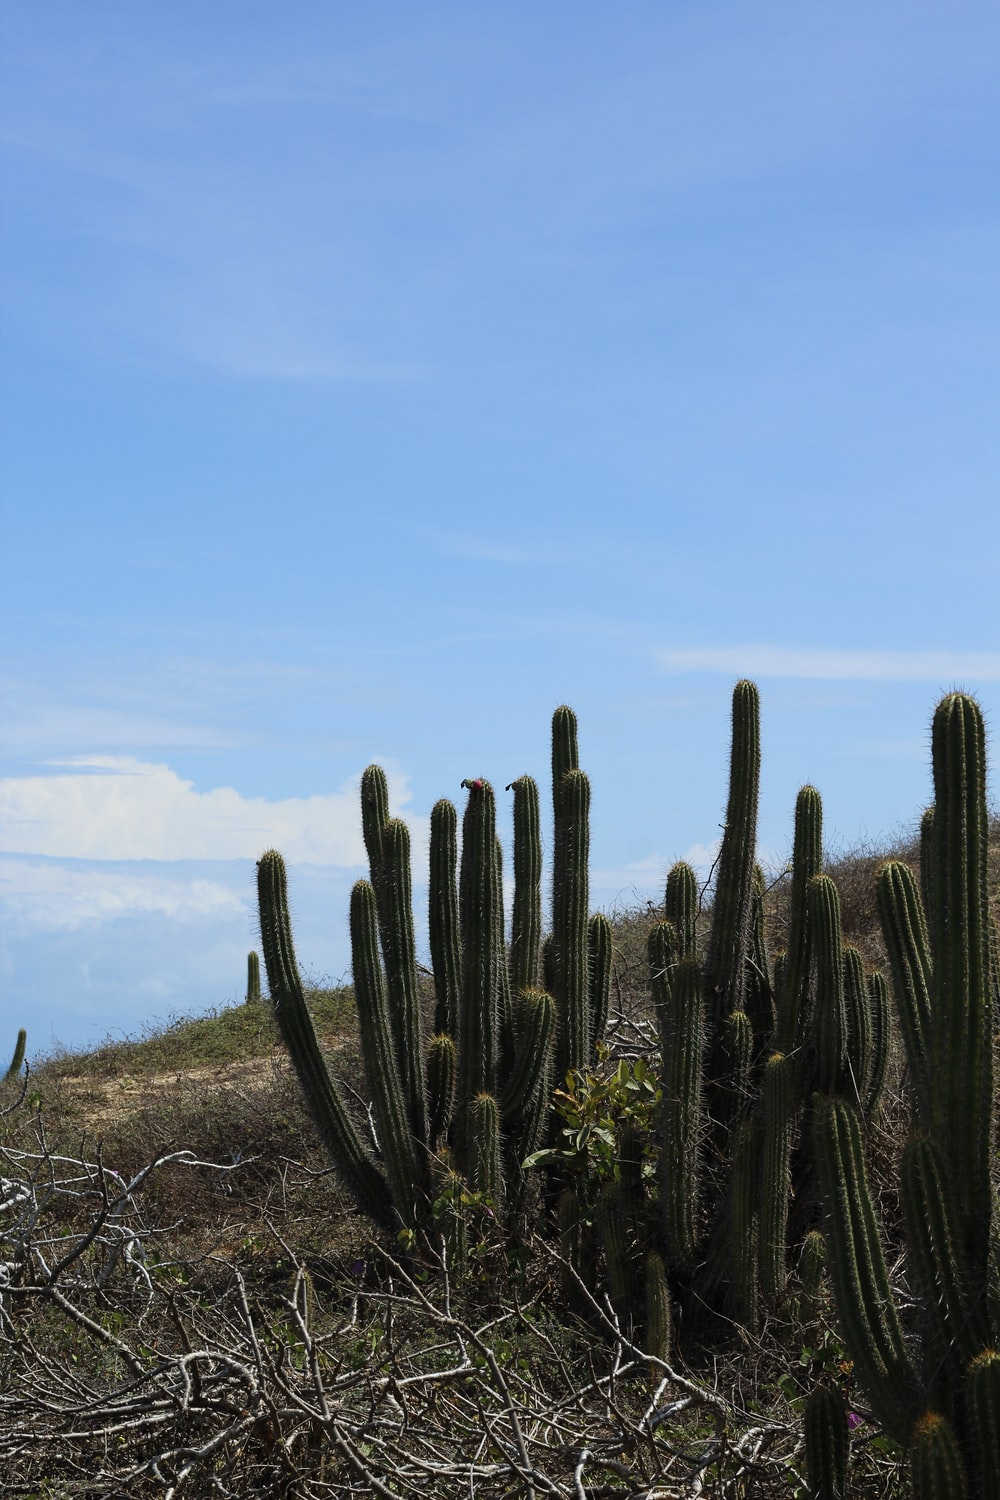 cactus plants on brown grass field under blue sky during daytime